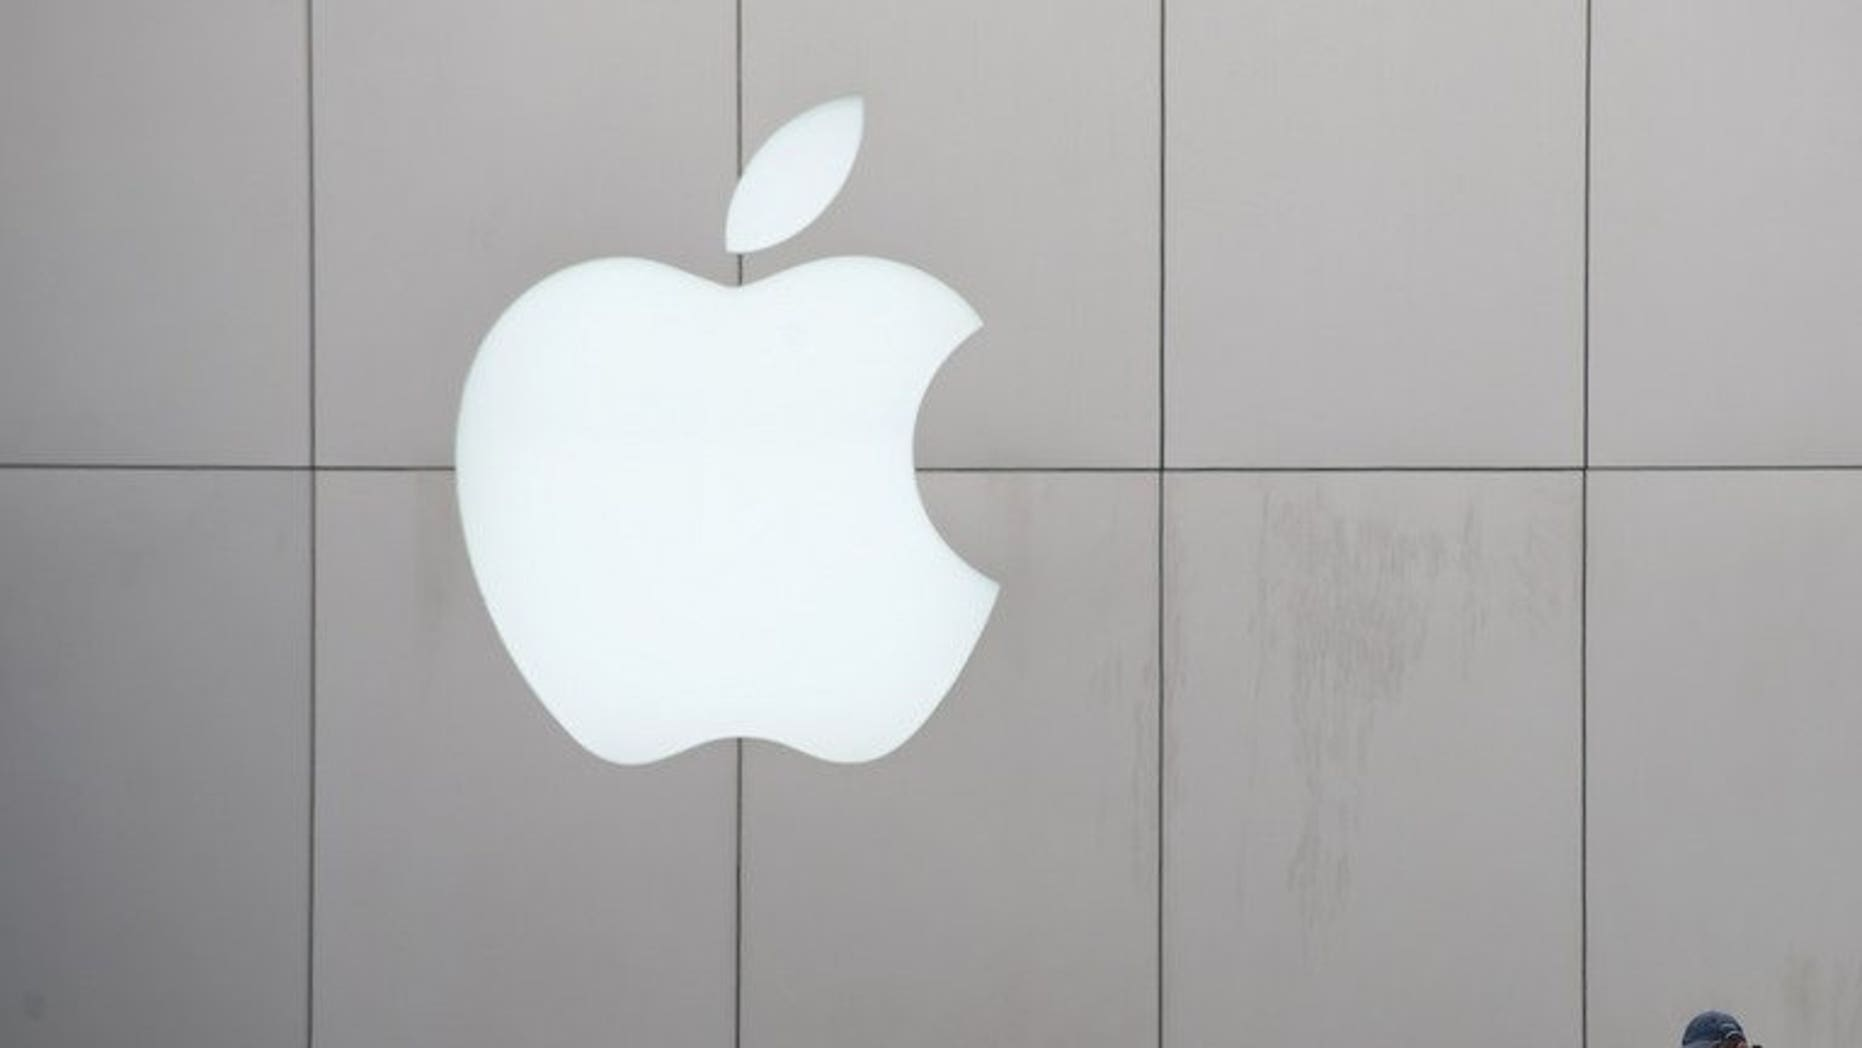 An Apple logo is displayed at a shopping mall in Beijing on March 29, 2013. Three Chinese factories making Apple products impose excessive overtime and employ minors, a US-based advocacy group said, renewing scrutiny of labour practices by the US tech giant's suppliers.